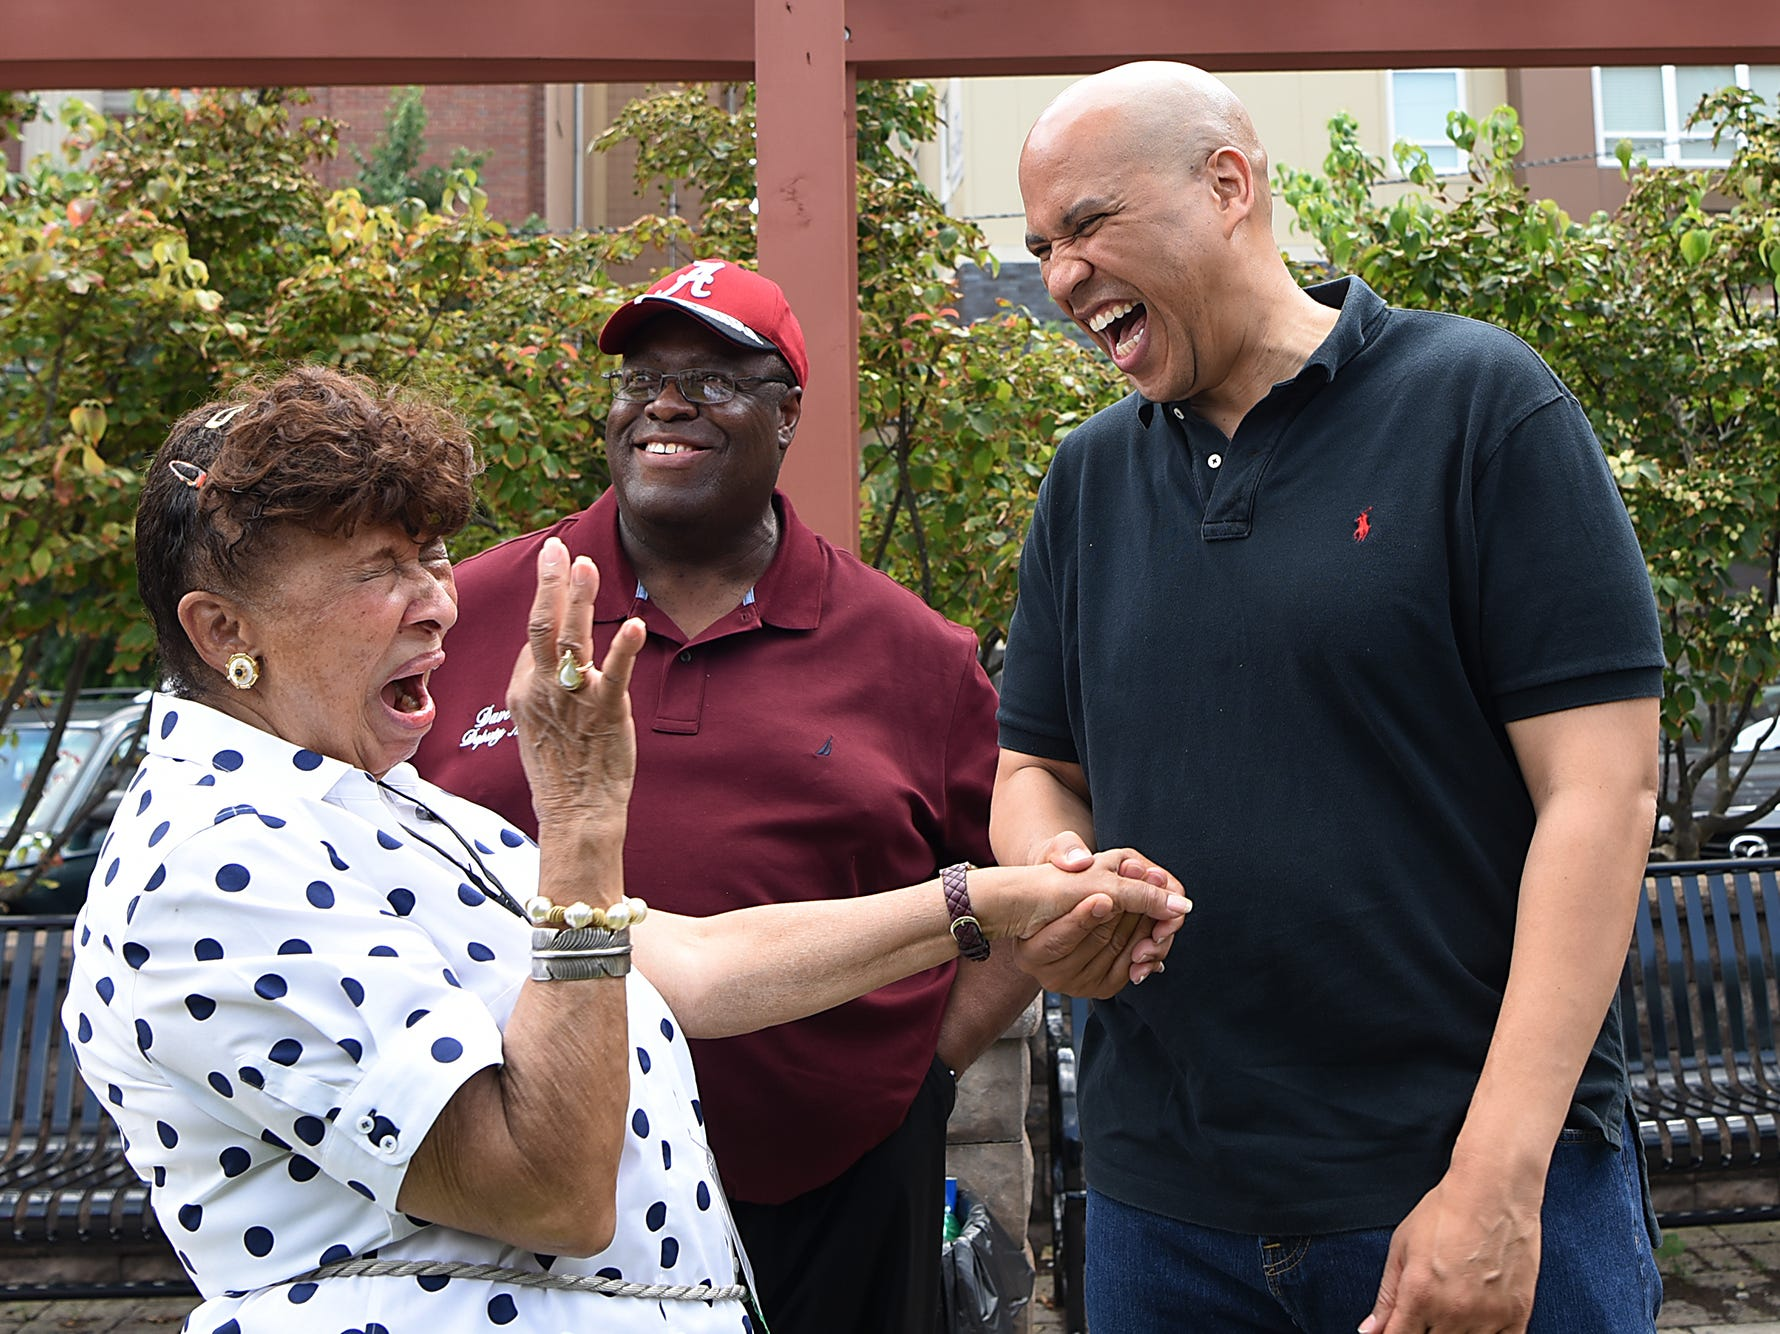 Lee Porter (left) and Senator Cory Booker (right) share a laugh along with Dave Sims. Fair Housing Council of Northern New Jersey holds a picnic in Hackensack on Friday August 10, 2018.